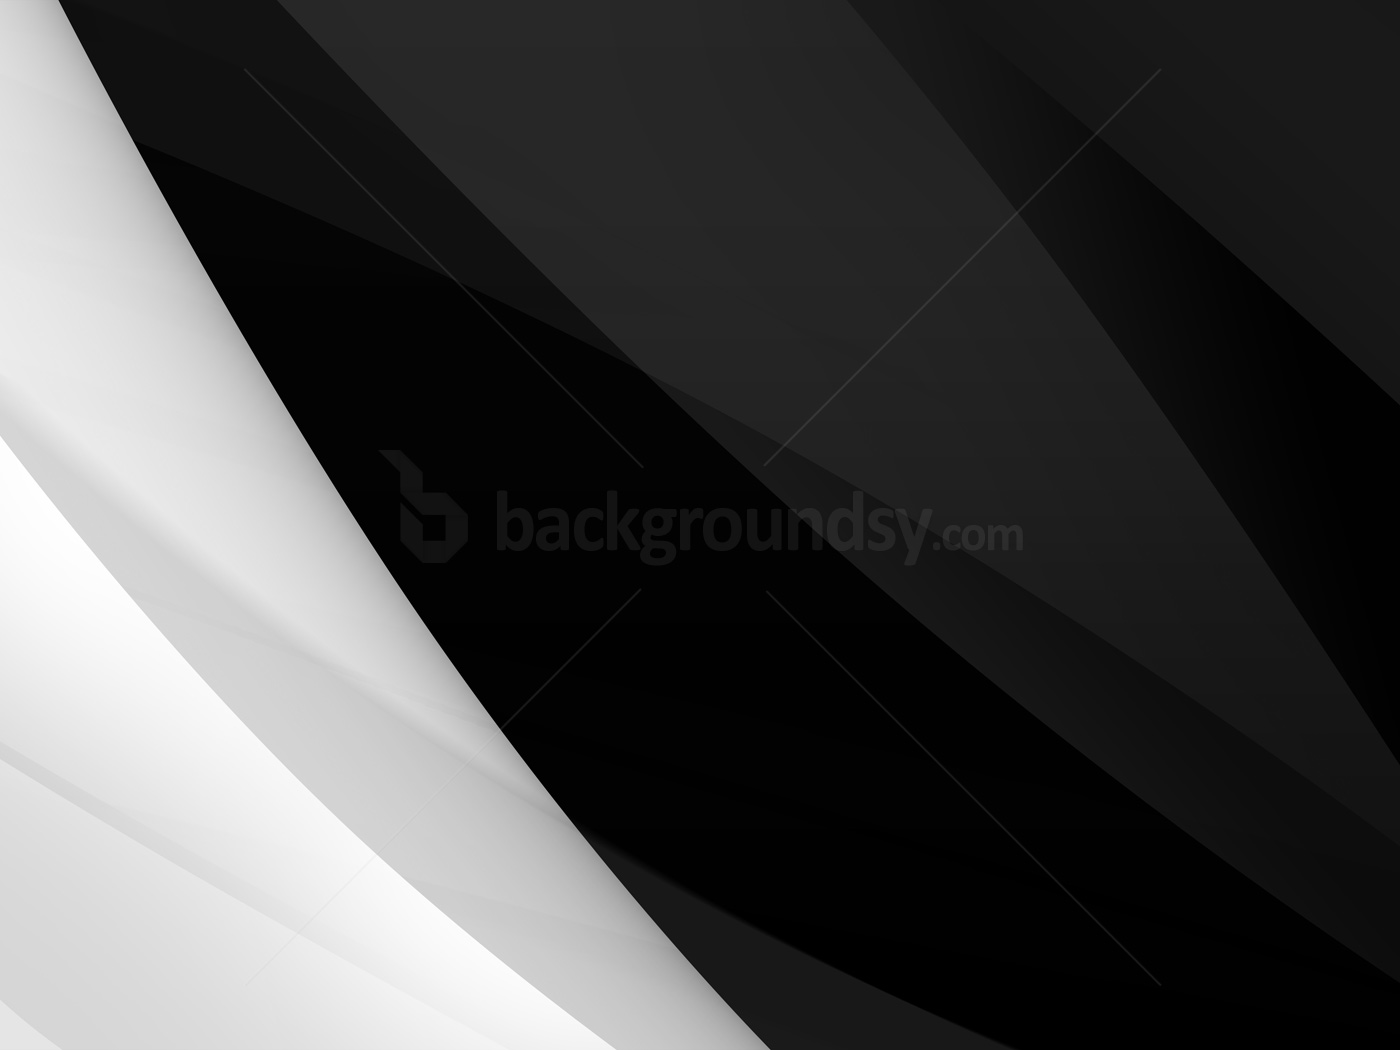 Black amp white abstract background Backgroundsycom 1400x1050